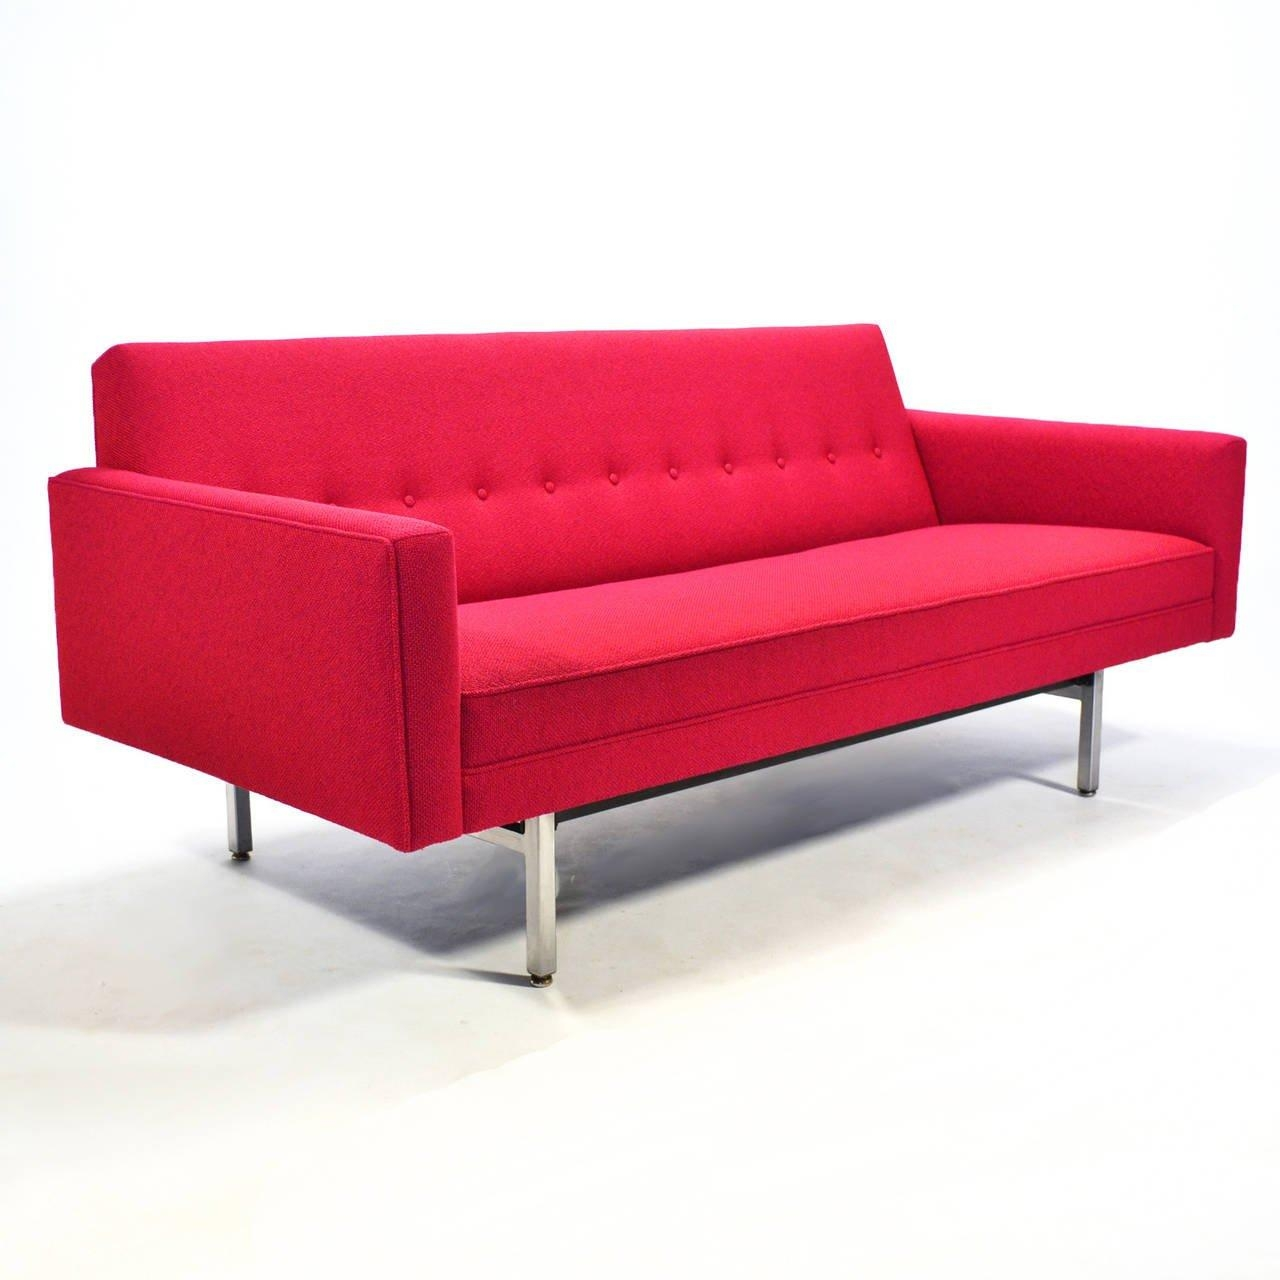 George Nelson Modular Group Sofa For Sale At 1Stdibs Within George Nelson Sofas (View 16 of 20)